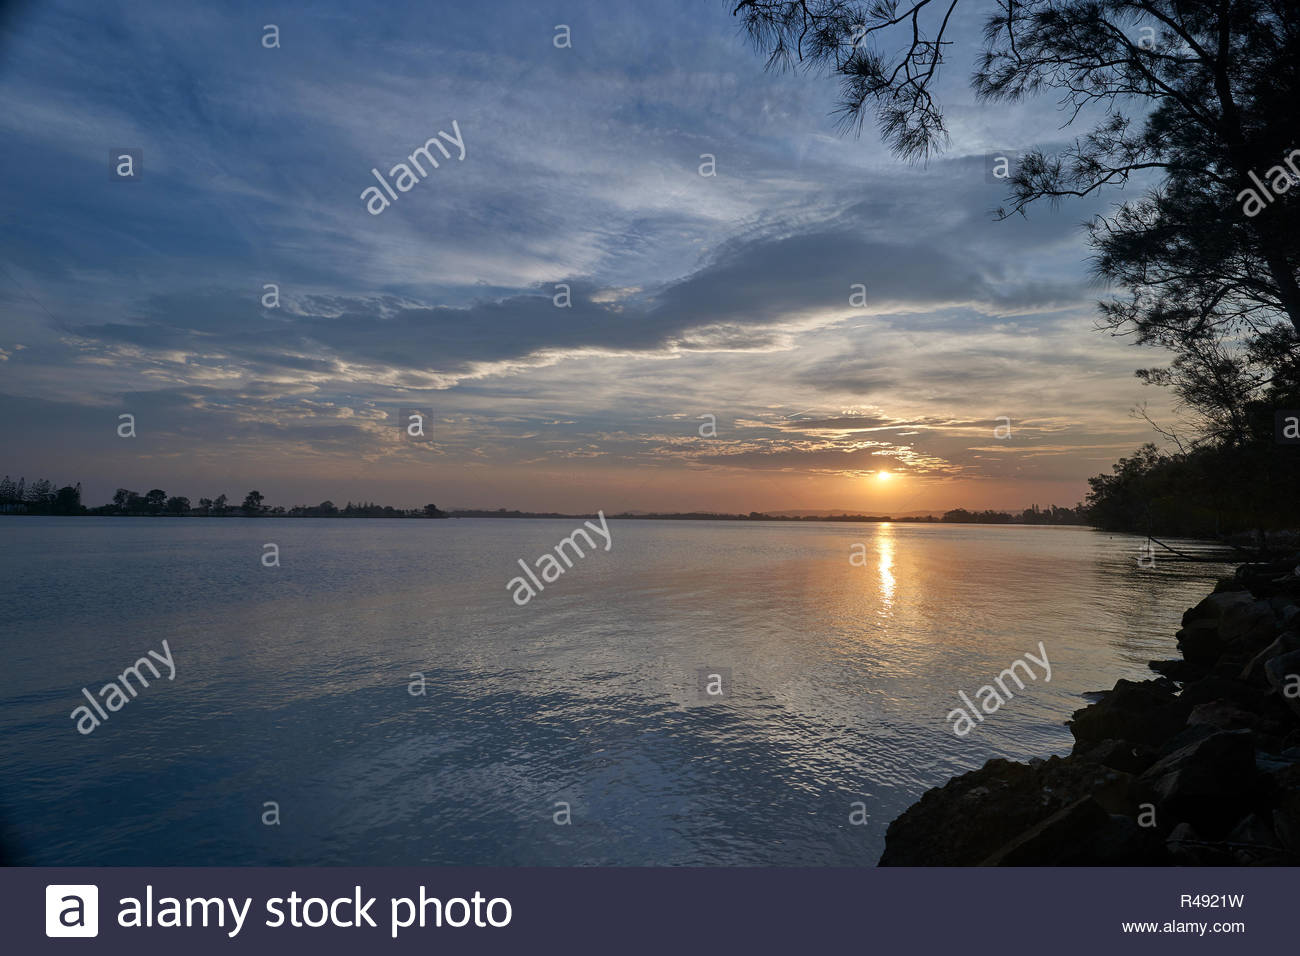 The colourful sky and water, of sunset over the Clarence River; taken from Goodwood Island - looking upstream - near Iluka and Yamba, NSW, Australia. - Stock Image